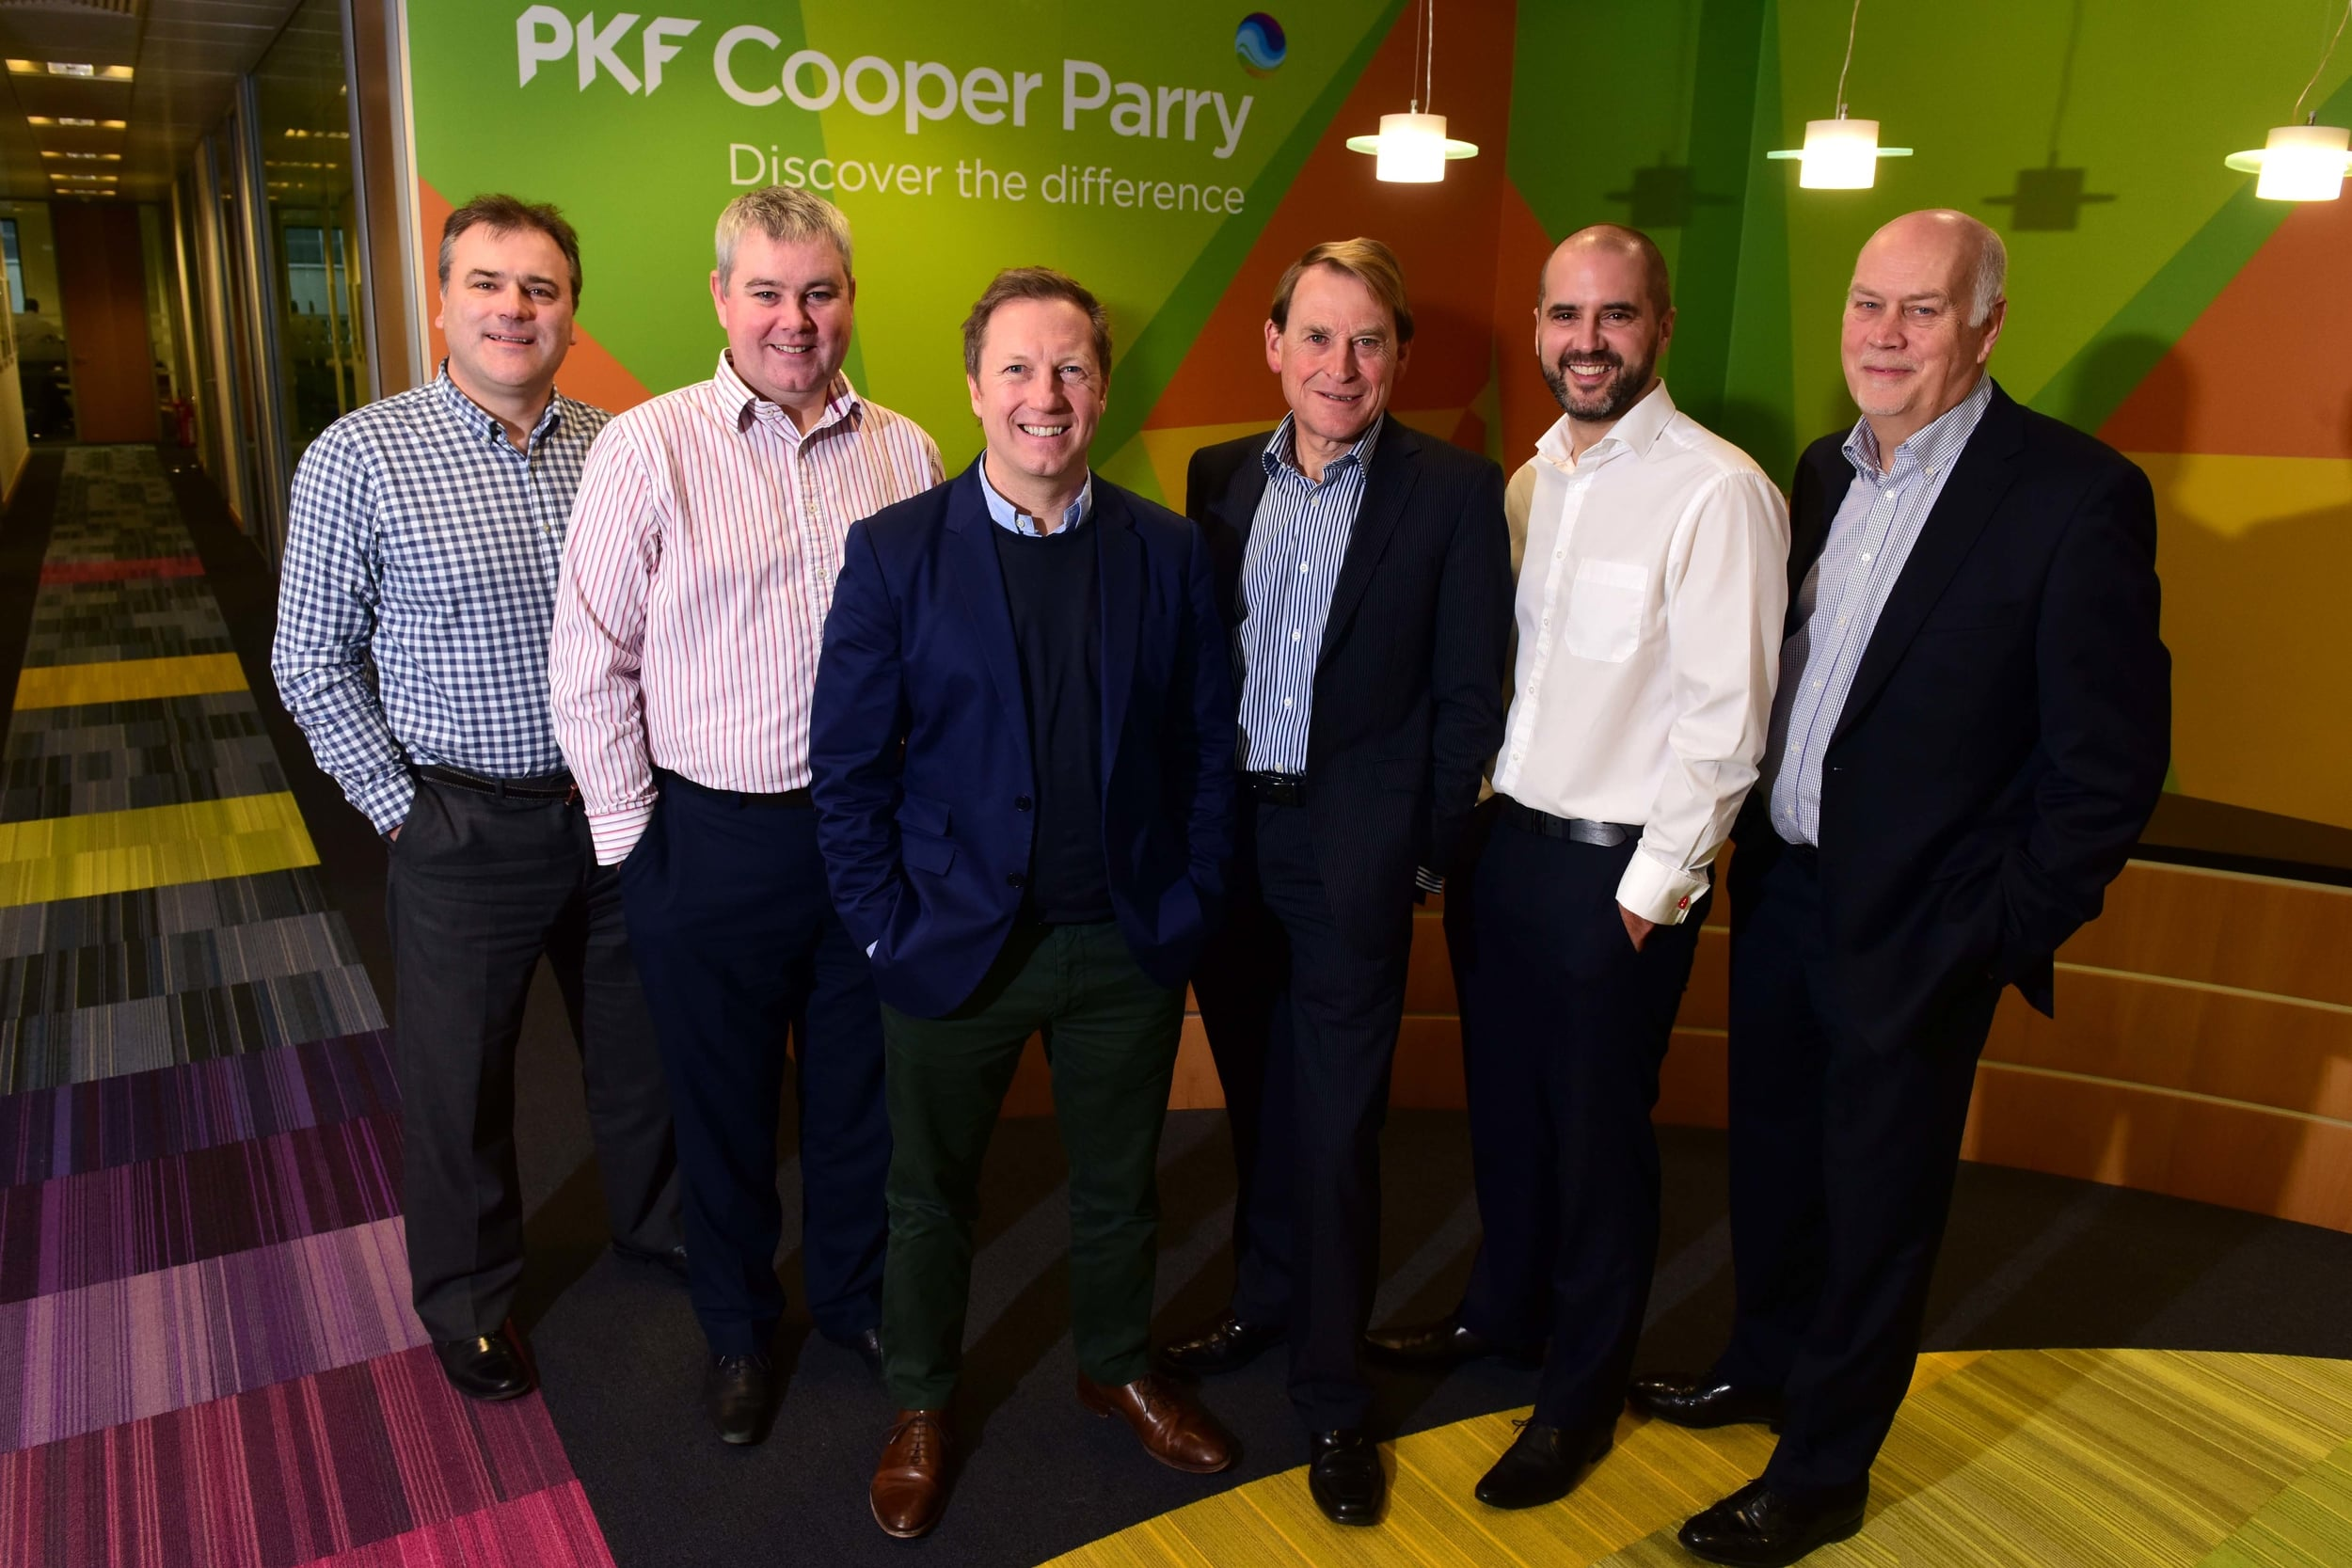 Left to right: Gavin Whitehouse and Ross Cocker (formerly of Clement Keys), Ade Cheatham (CEO of PKF Cooper Parry), Joe Bates (formerly of Clement Keys), Danny Parker and Jeremy Bowler